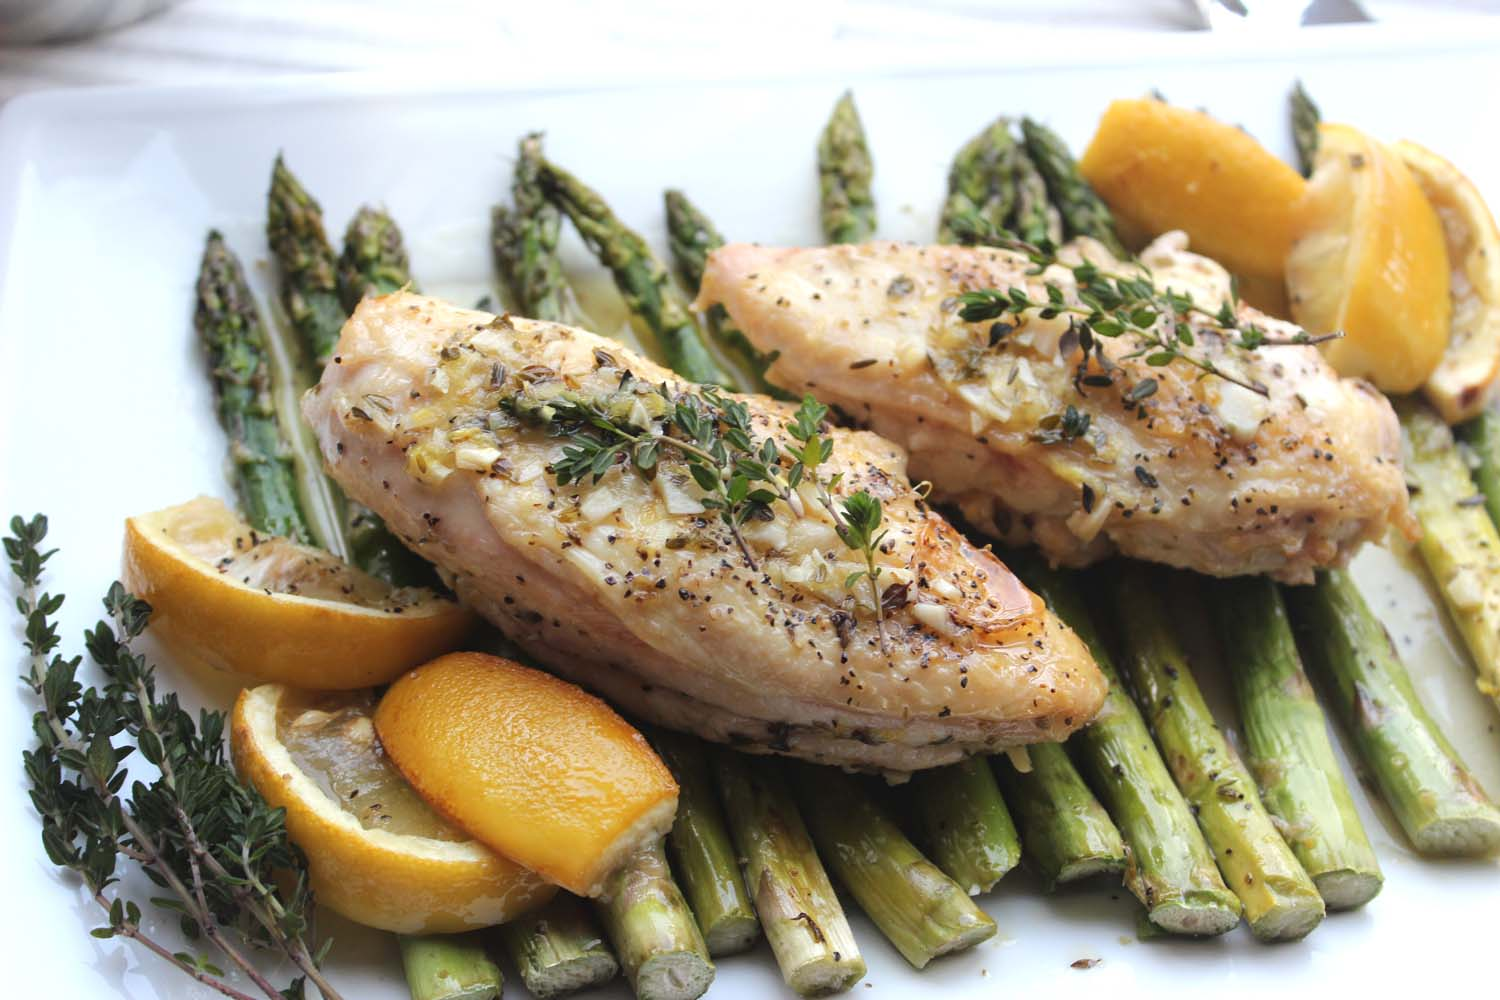 Lemon Chicken with Roasted Asparagus    Image:  Laura Messersmith